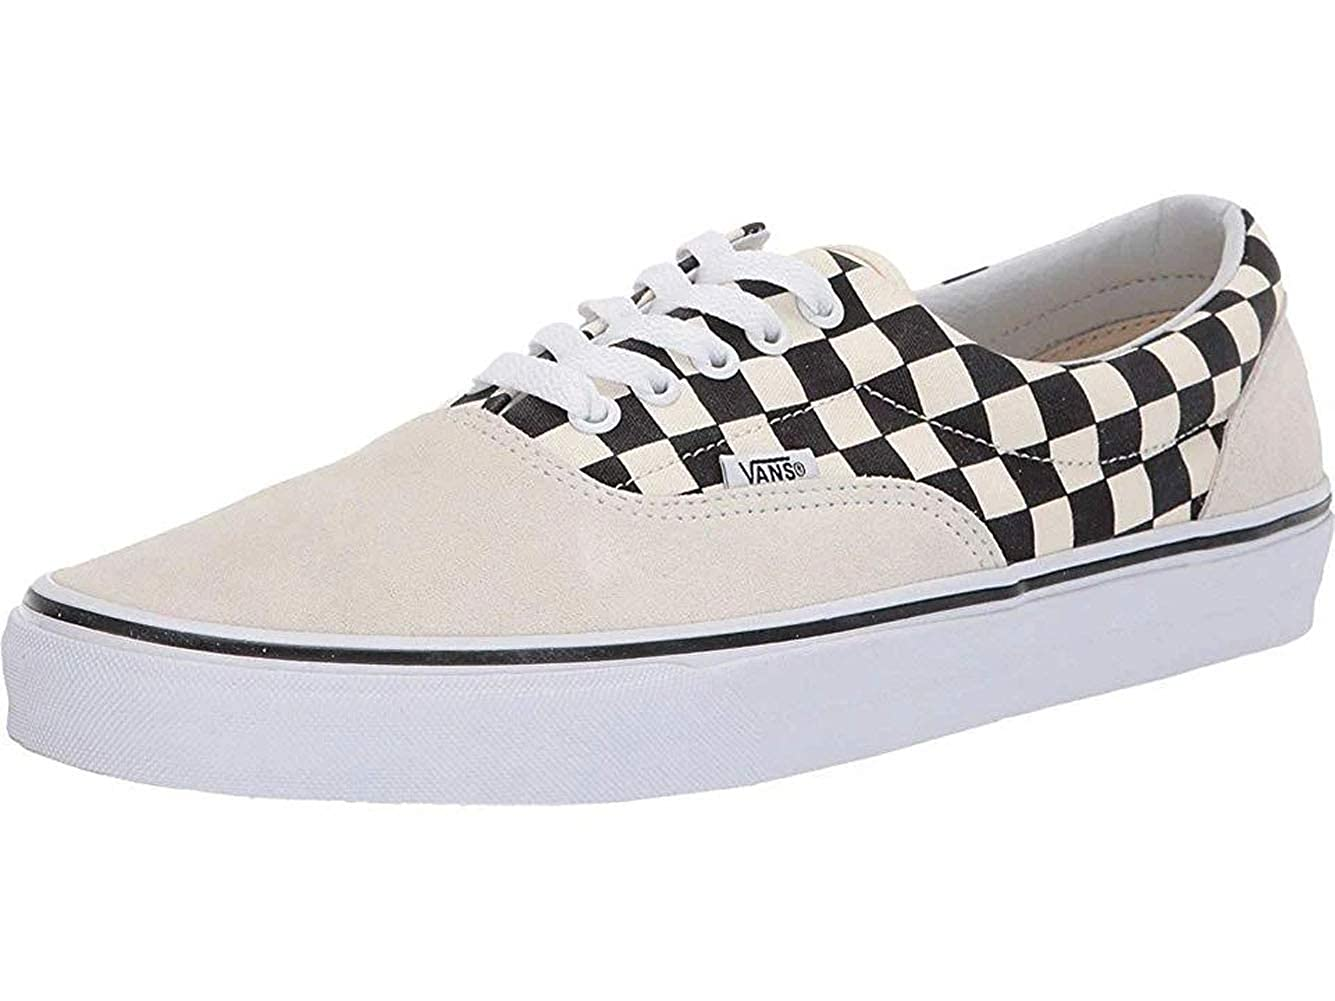 [バンズ] スニーカー Women's AUTHENTIC (Pig Suede) VN0A38EMU5O レディース B07G3BZCH8 Marshmallow Black 8.5 M US Women / 7 M US Men 8.5 M US Women / 7 M US Men|Marshmallow Black